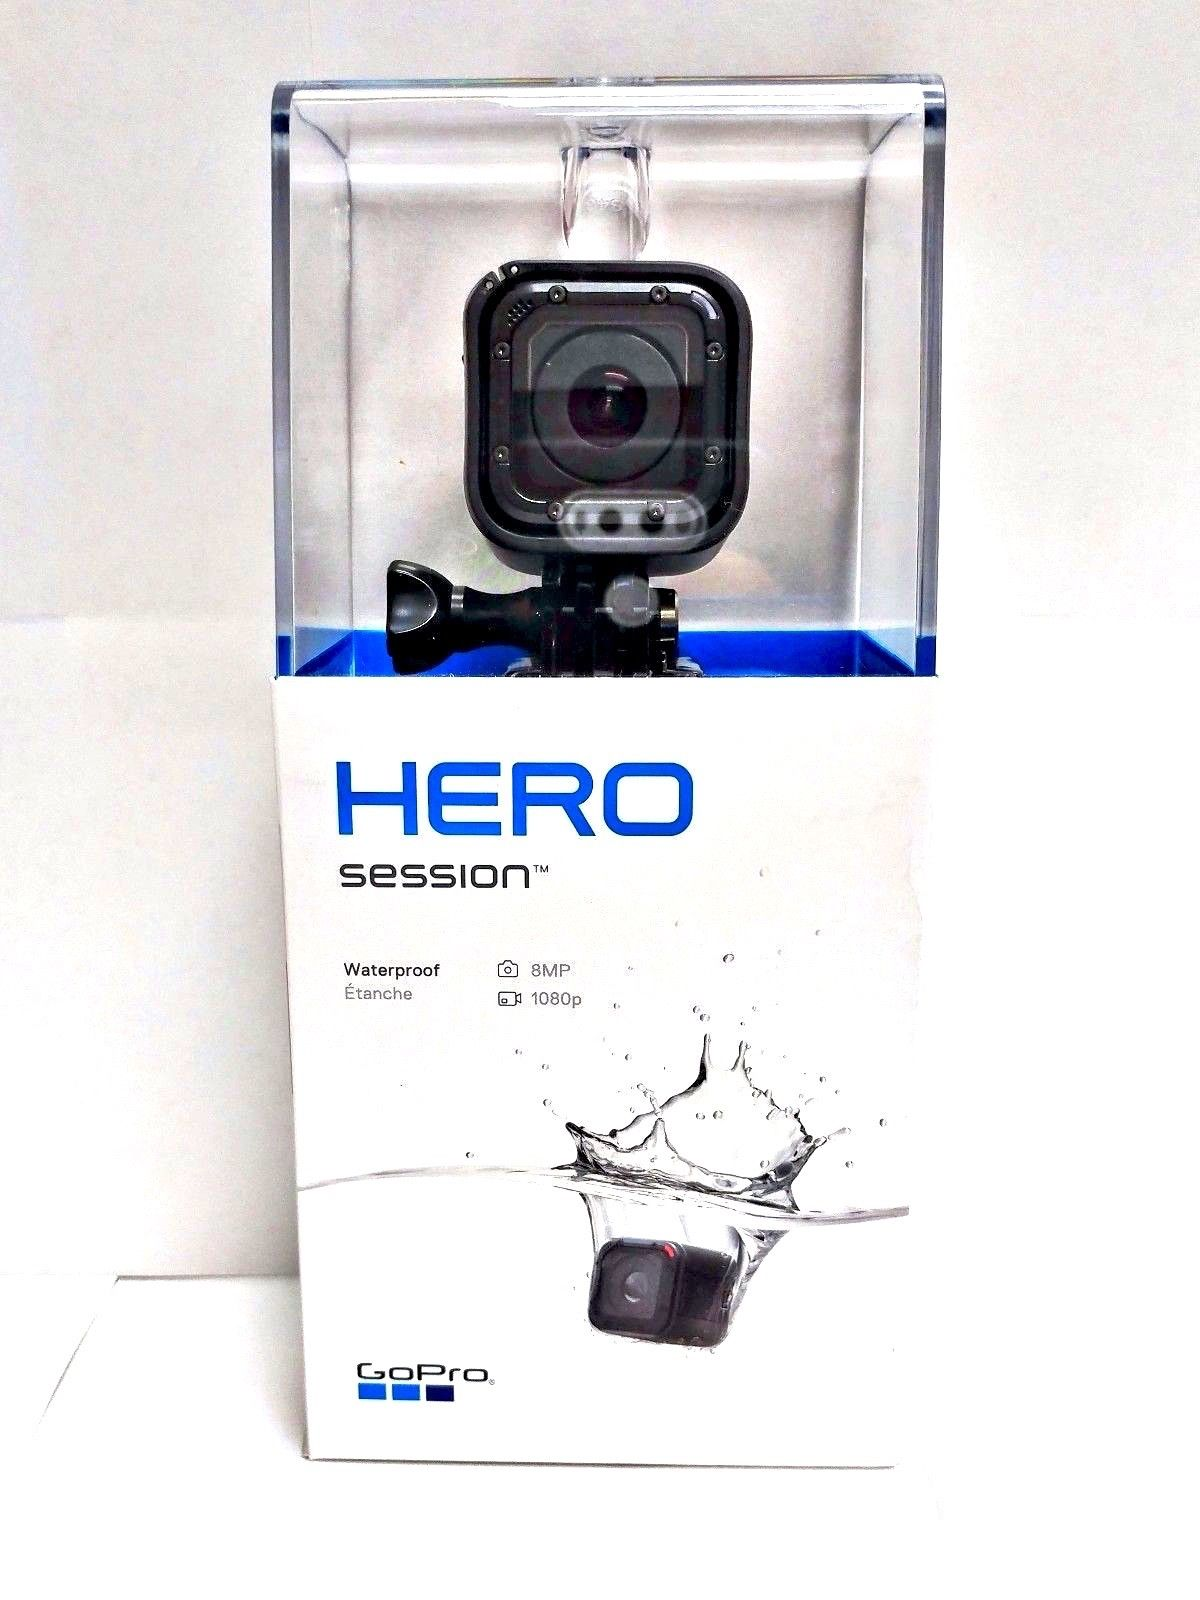 GOPRO HERO Session HD Movement Digicam WiFi Video 1080p Digital camera NEW + WARRANTY